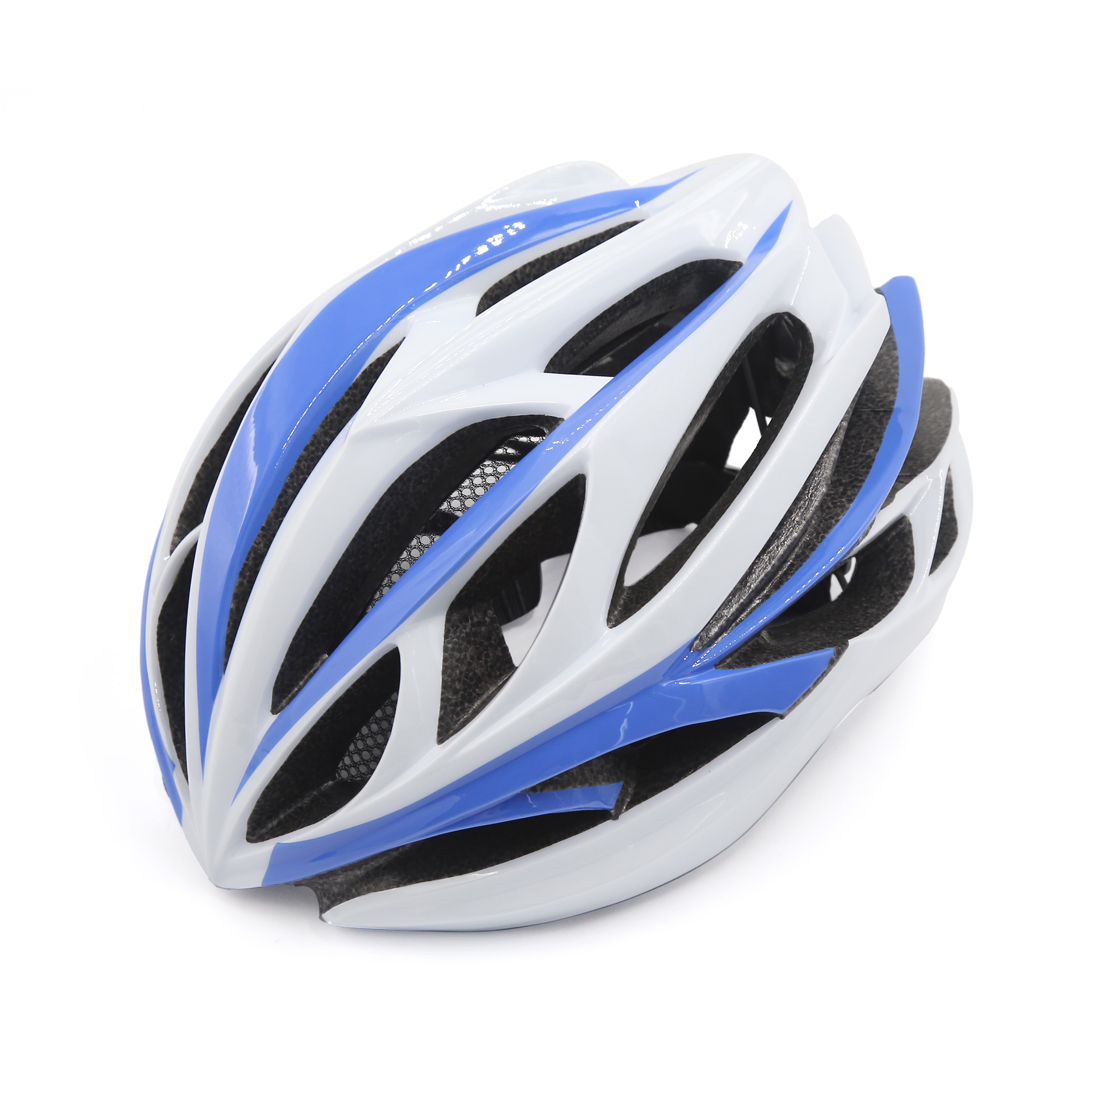 Unisex Adult Mountain Bike Bicycle Cycling Shockproof Helmet Light Blue White